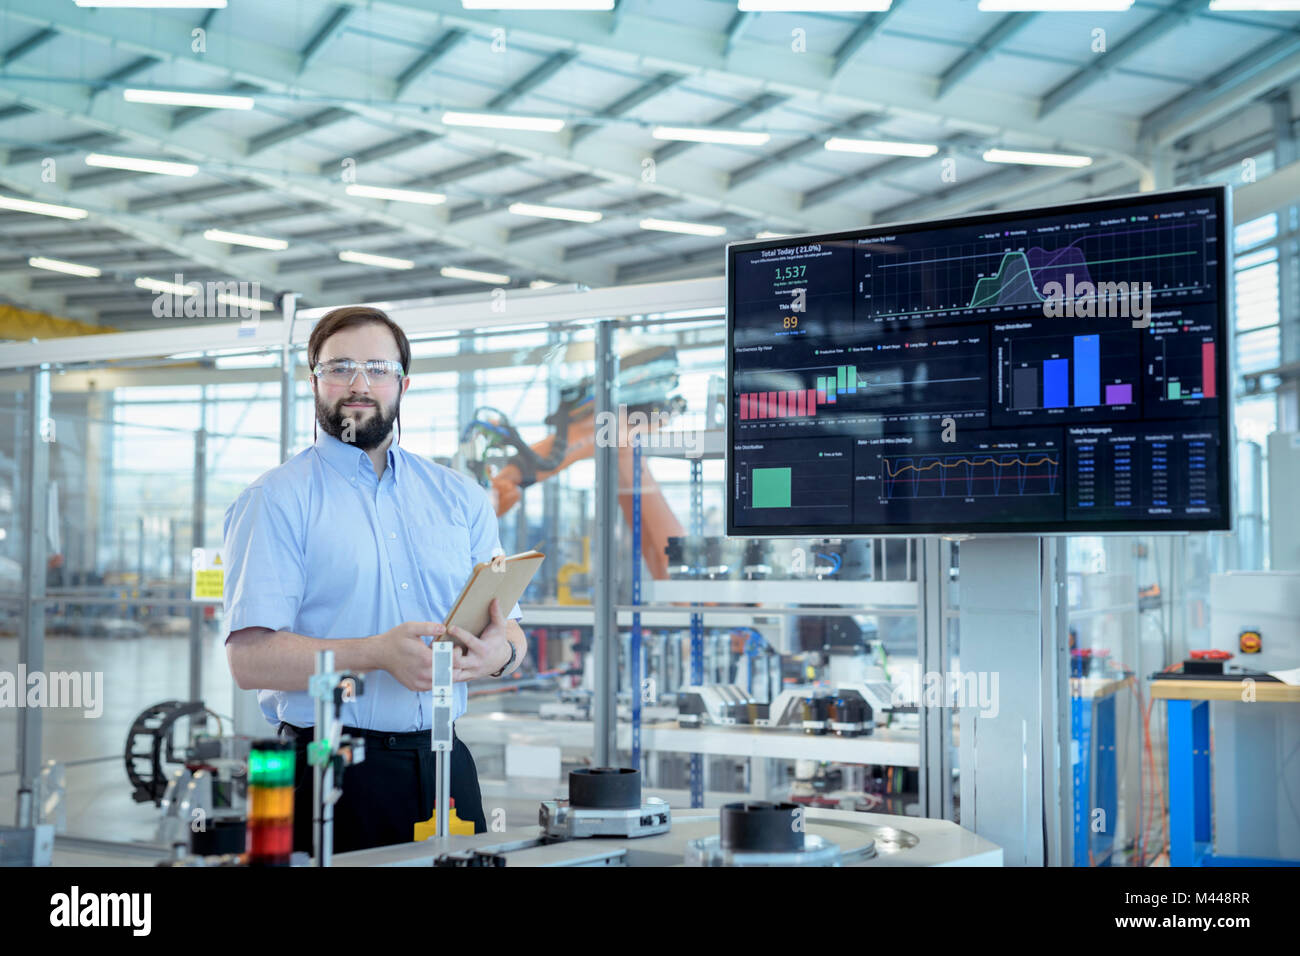 Portrait of robot engineer in robotics research facility - Stock Image